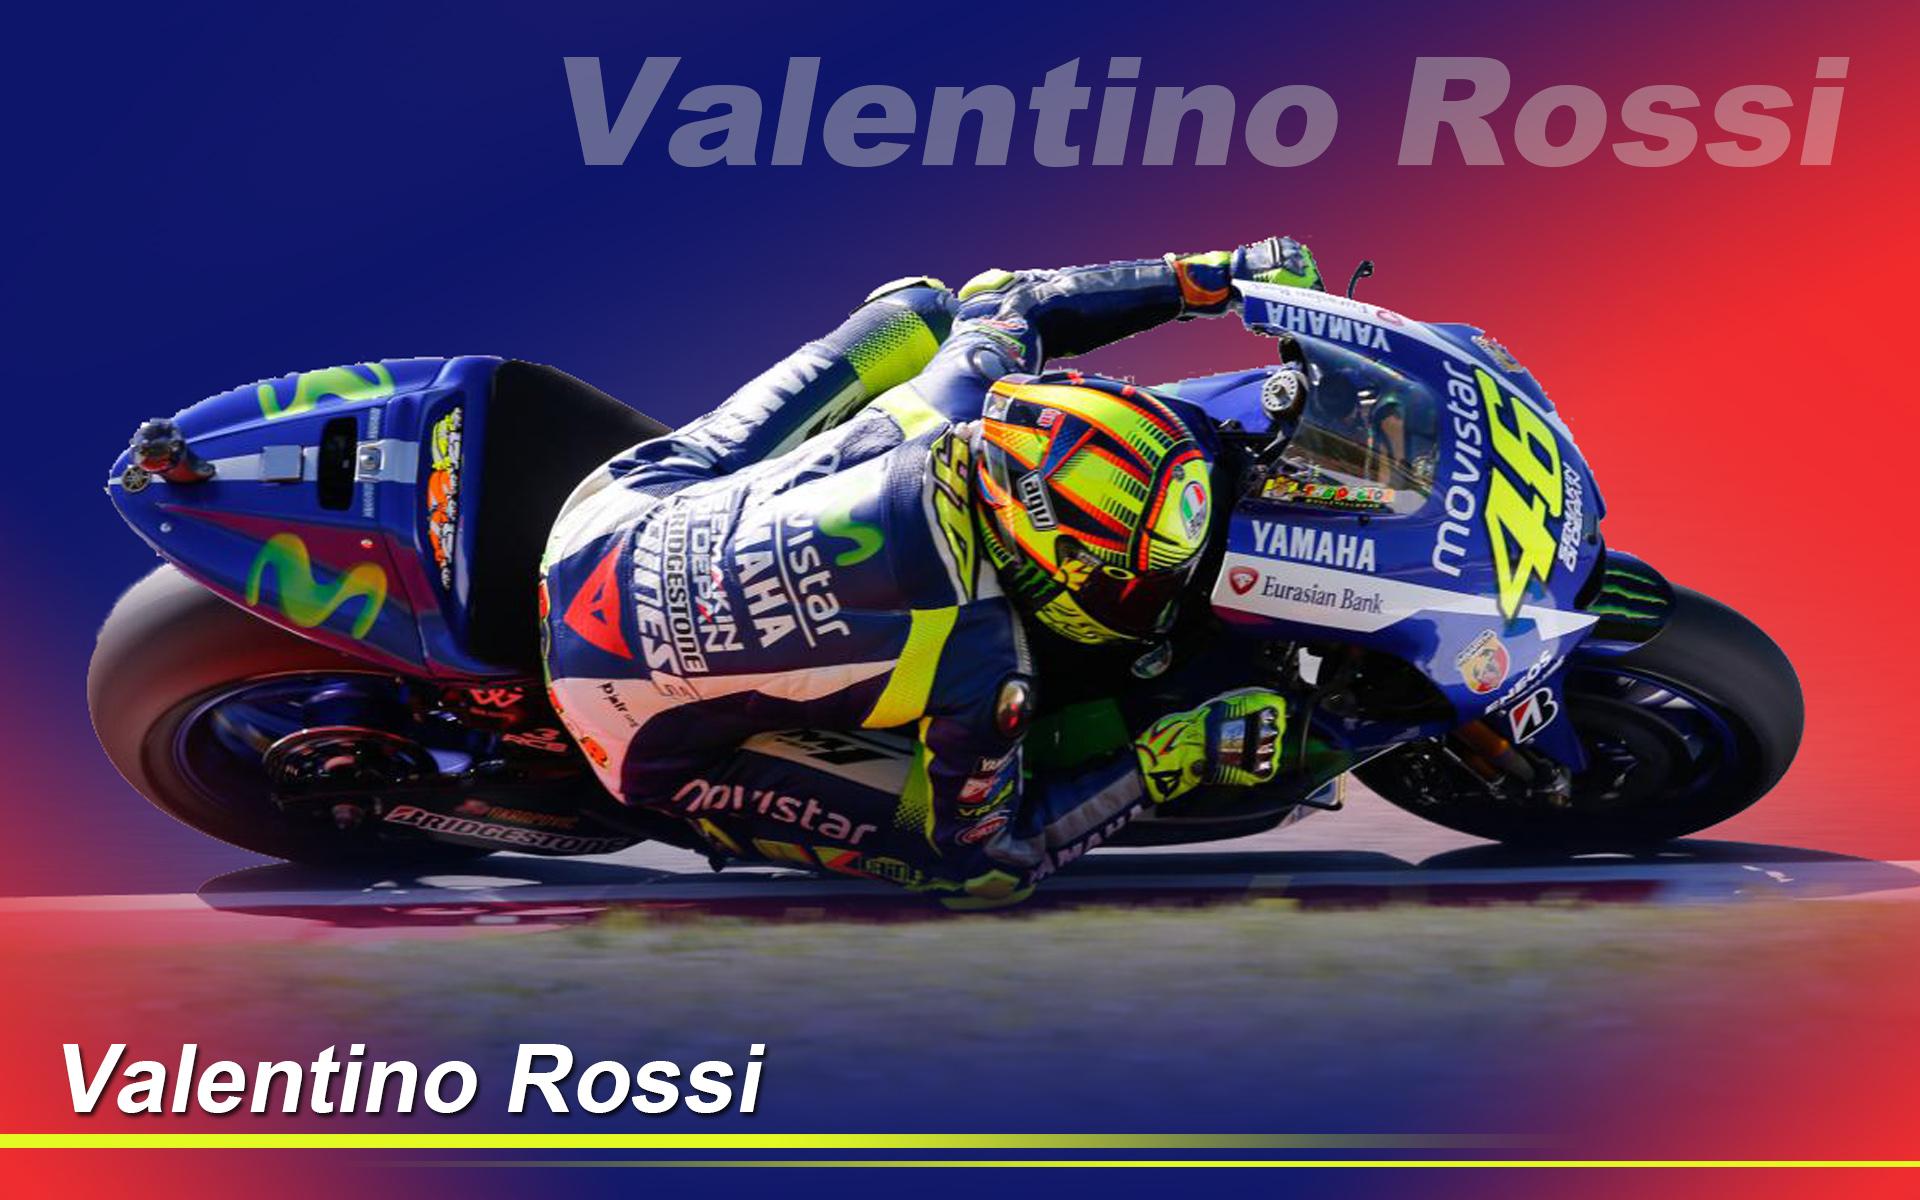 1920x1200 - Valentino Rossi Wallpapers 2